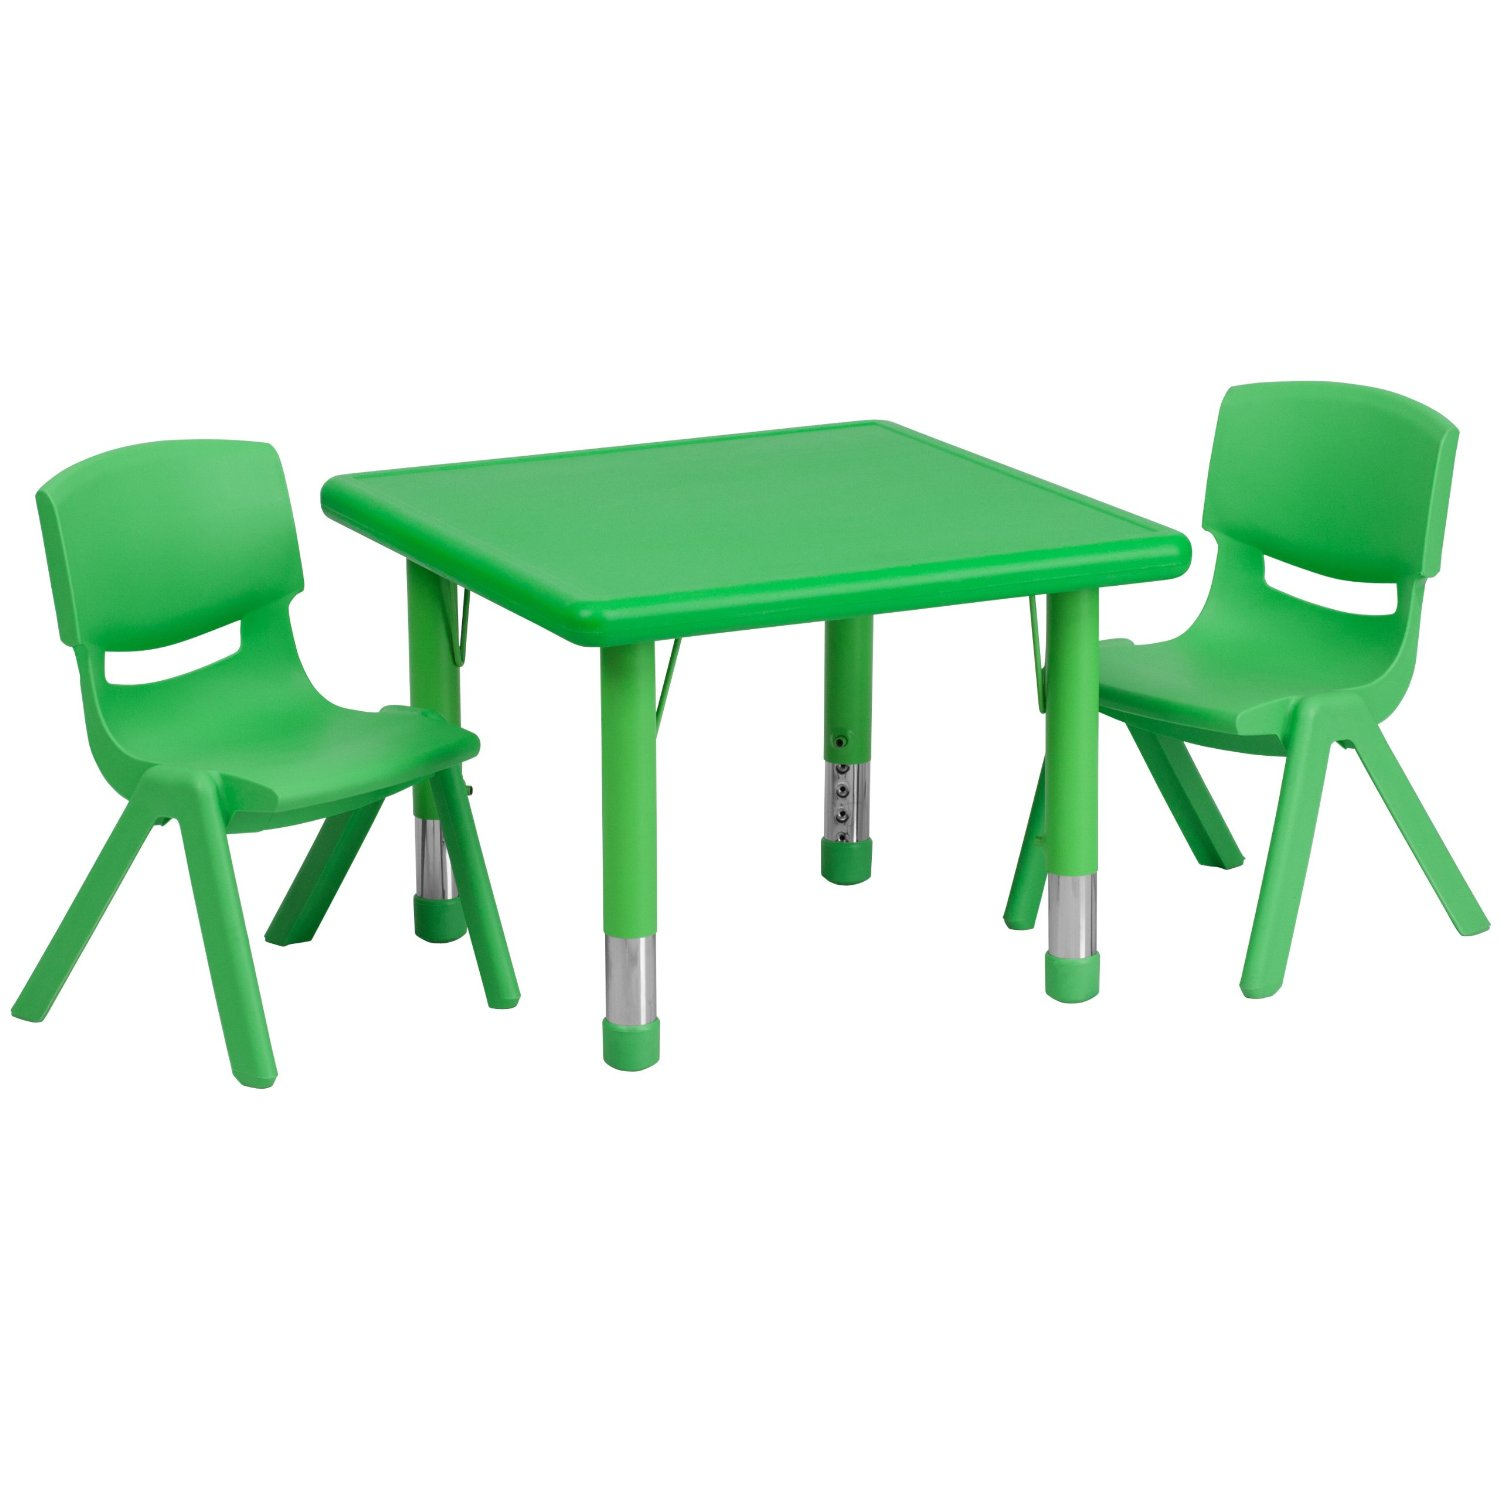 Plastic Toddler Chairs Total Fab Children 39s Plastic Table And Chair Sets